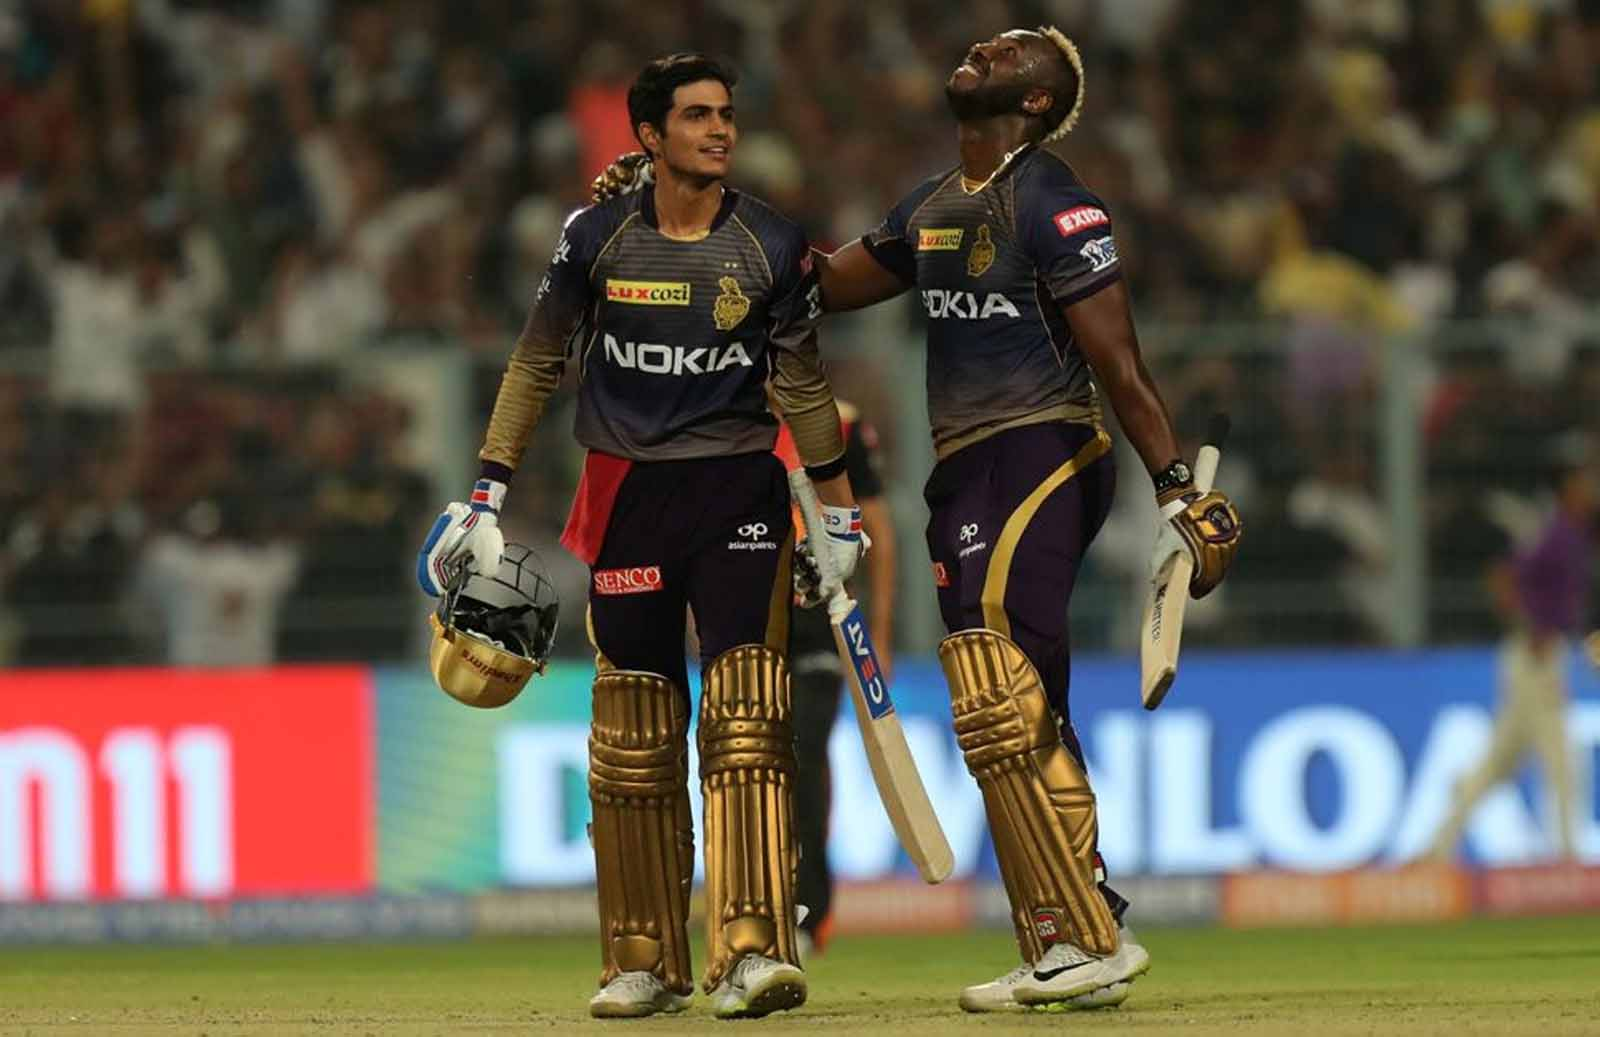 """""""Save The Best For The Last,""""- Shubhman Gill optimistic about Andre Russell Comeback With a Bang in IPL 2020"""